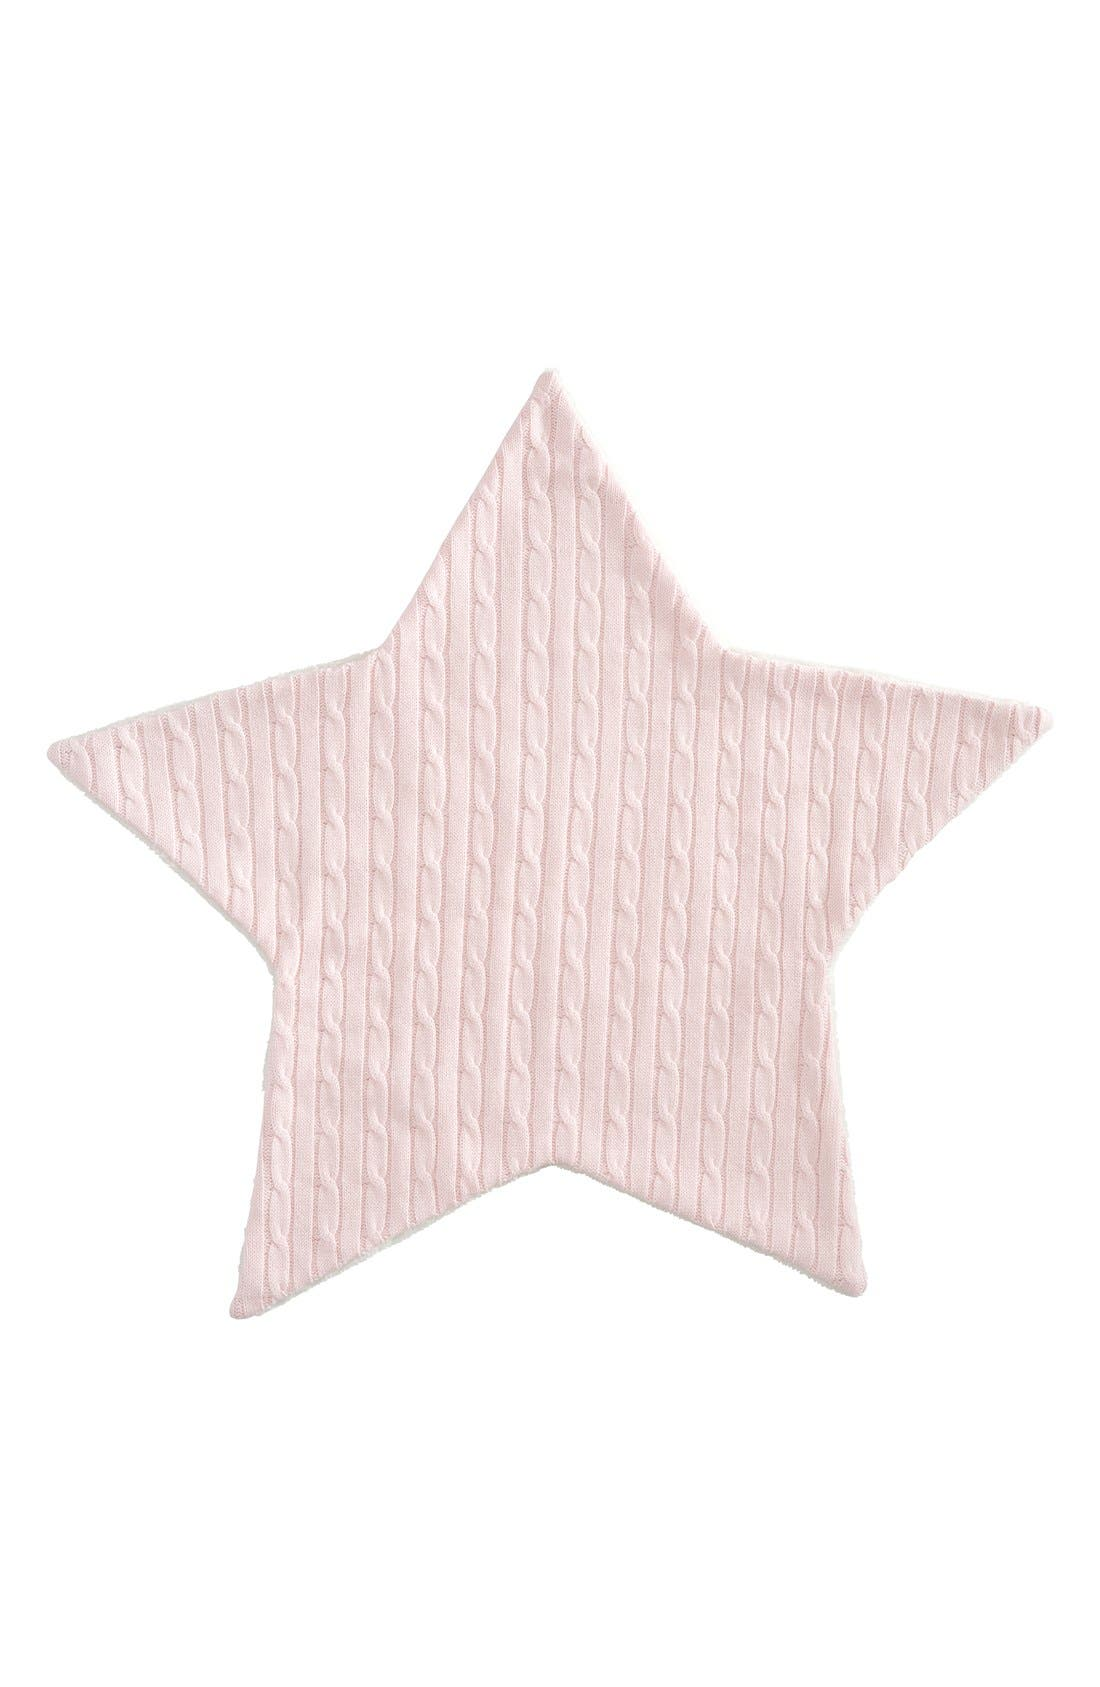 Cable Knit Star Blanket,                             Main thumbnail 3, color,